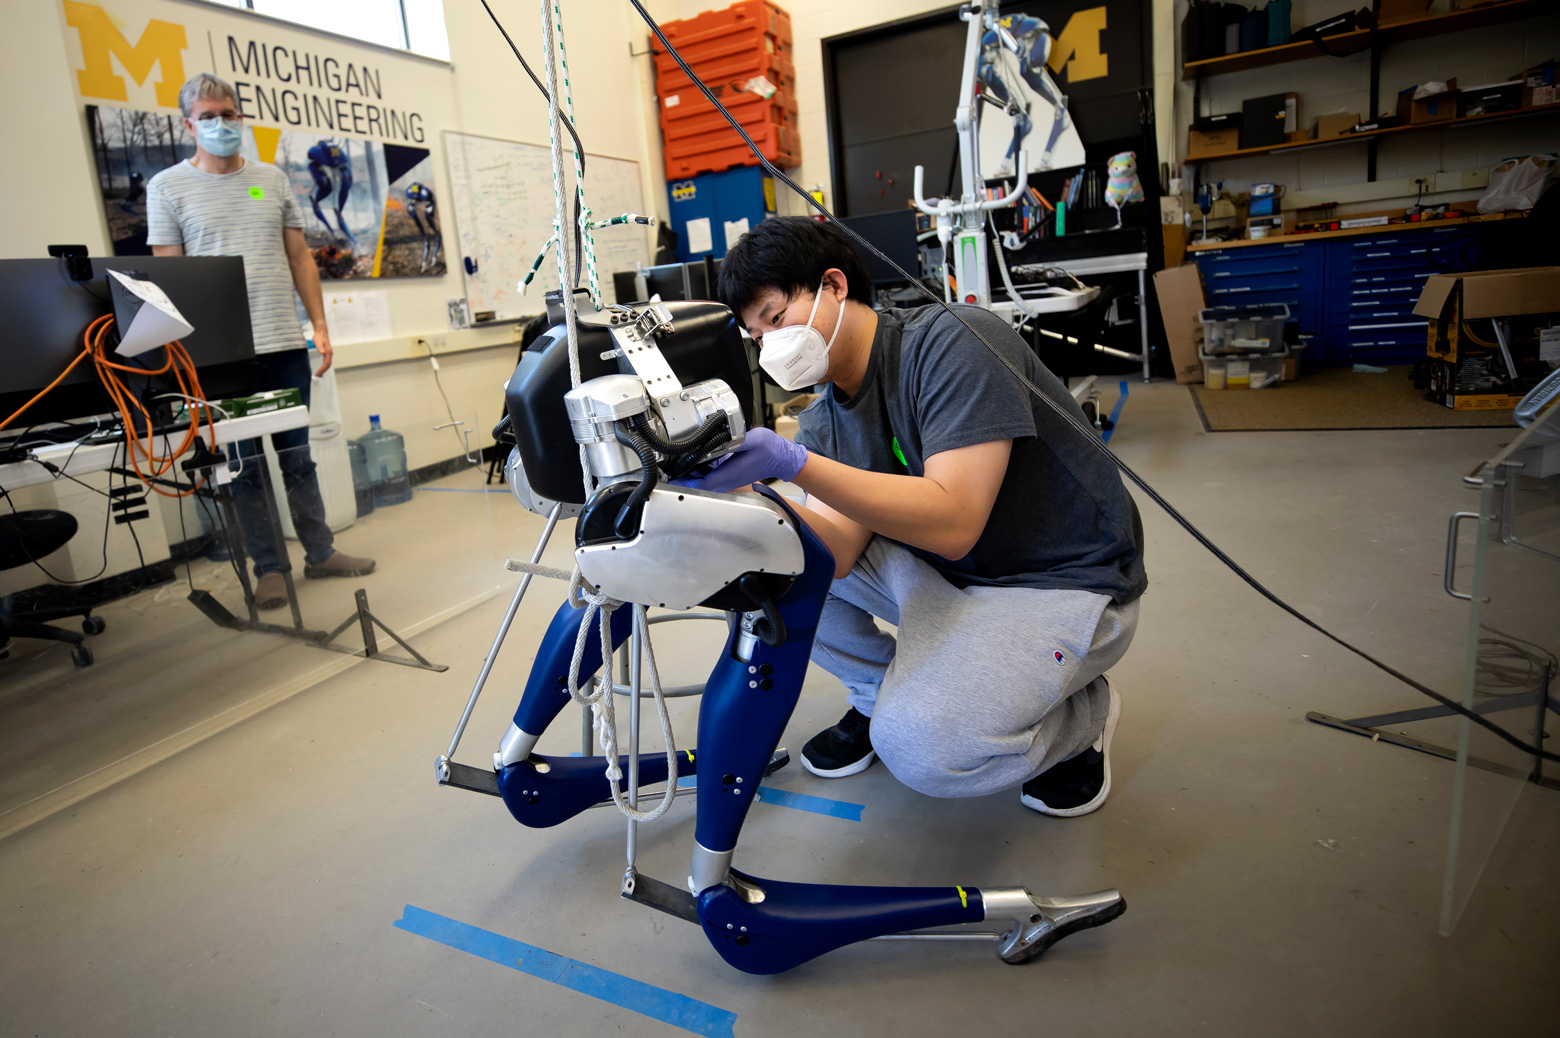 Yukai Gong, Robotics PhD Student, installs a battery into Cassie, a bipedal robot, as Jessy Grizzle, Director of the Robotics Institute, looks on in their lab on North Campus of the University of Michigan in Ann Arbor, MI on May 26, 2020.